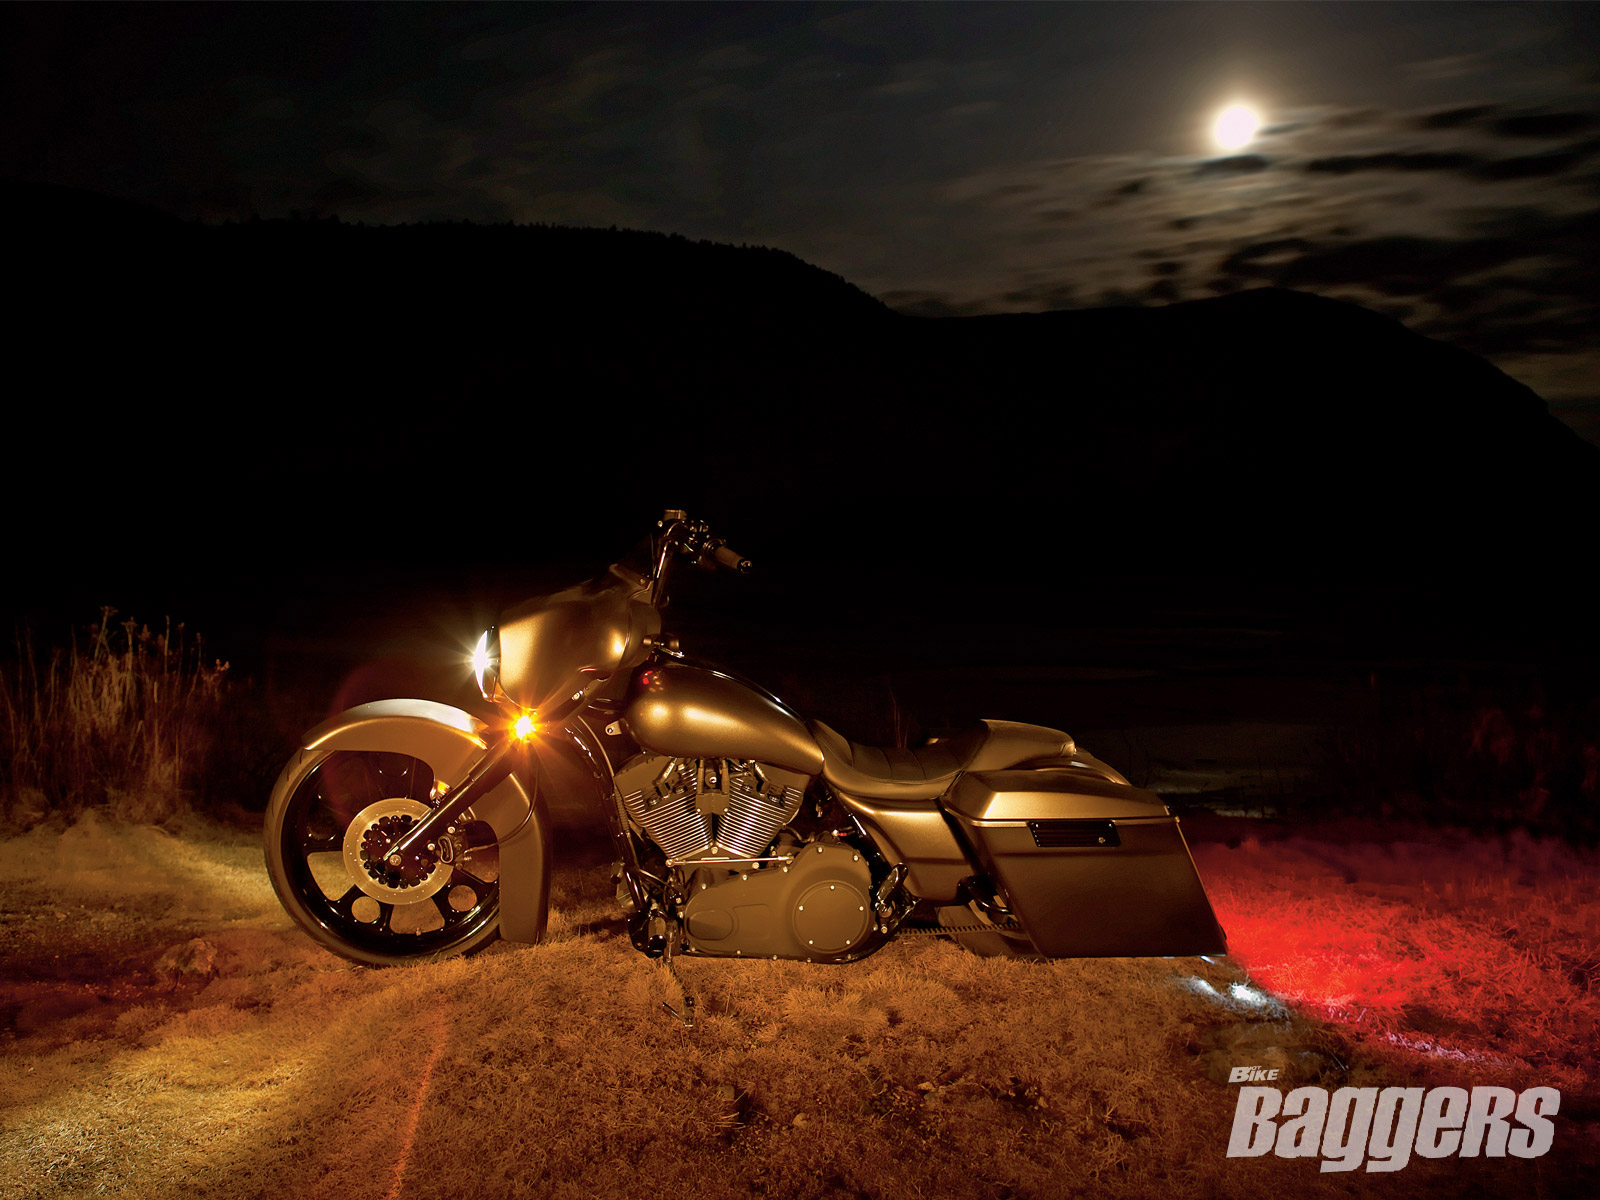 1 2007 Harley Davidson Chopped Street Glide Hd Wallpapers